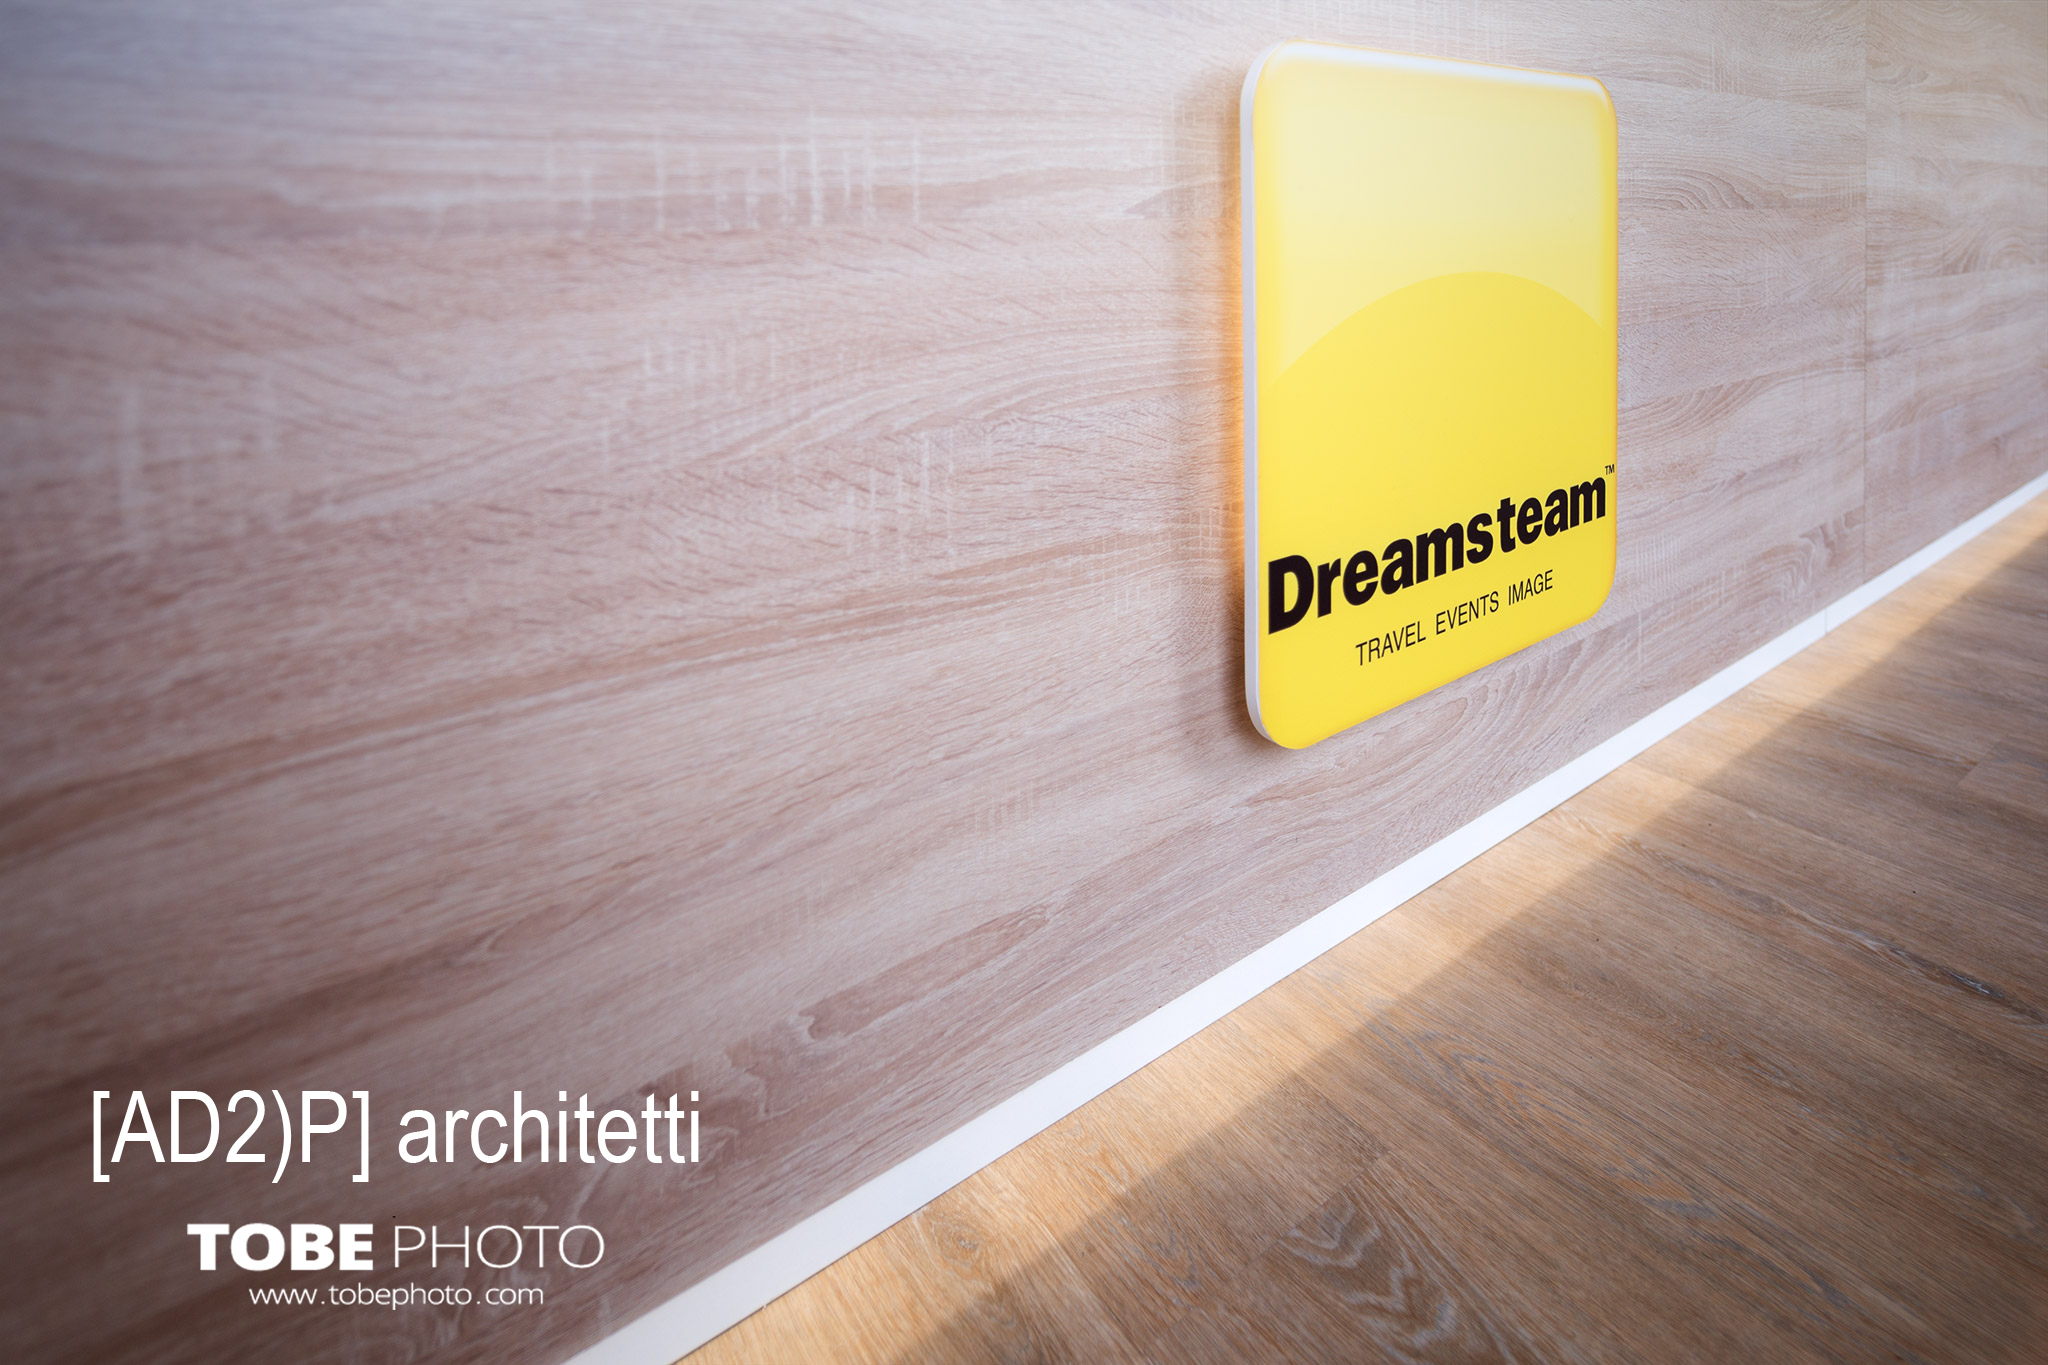 DREAMSTEAM travel agency